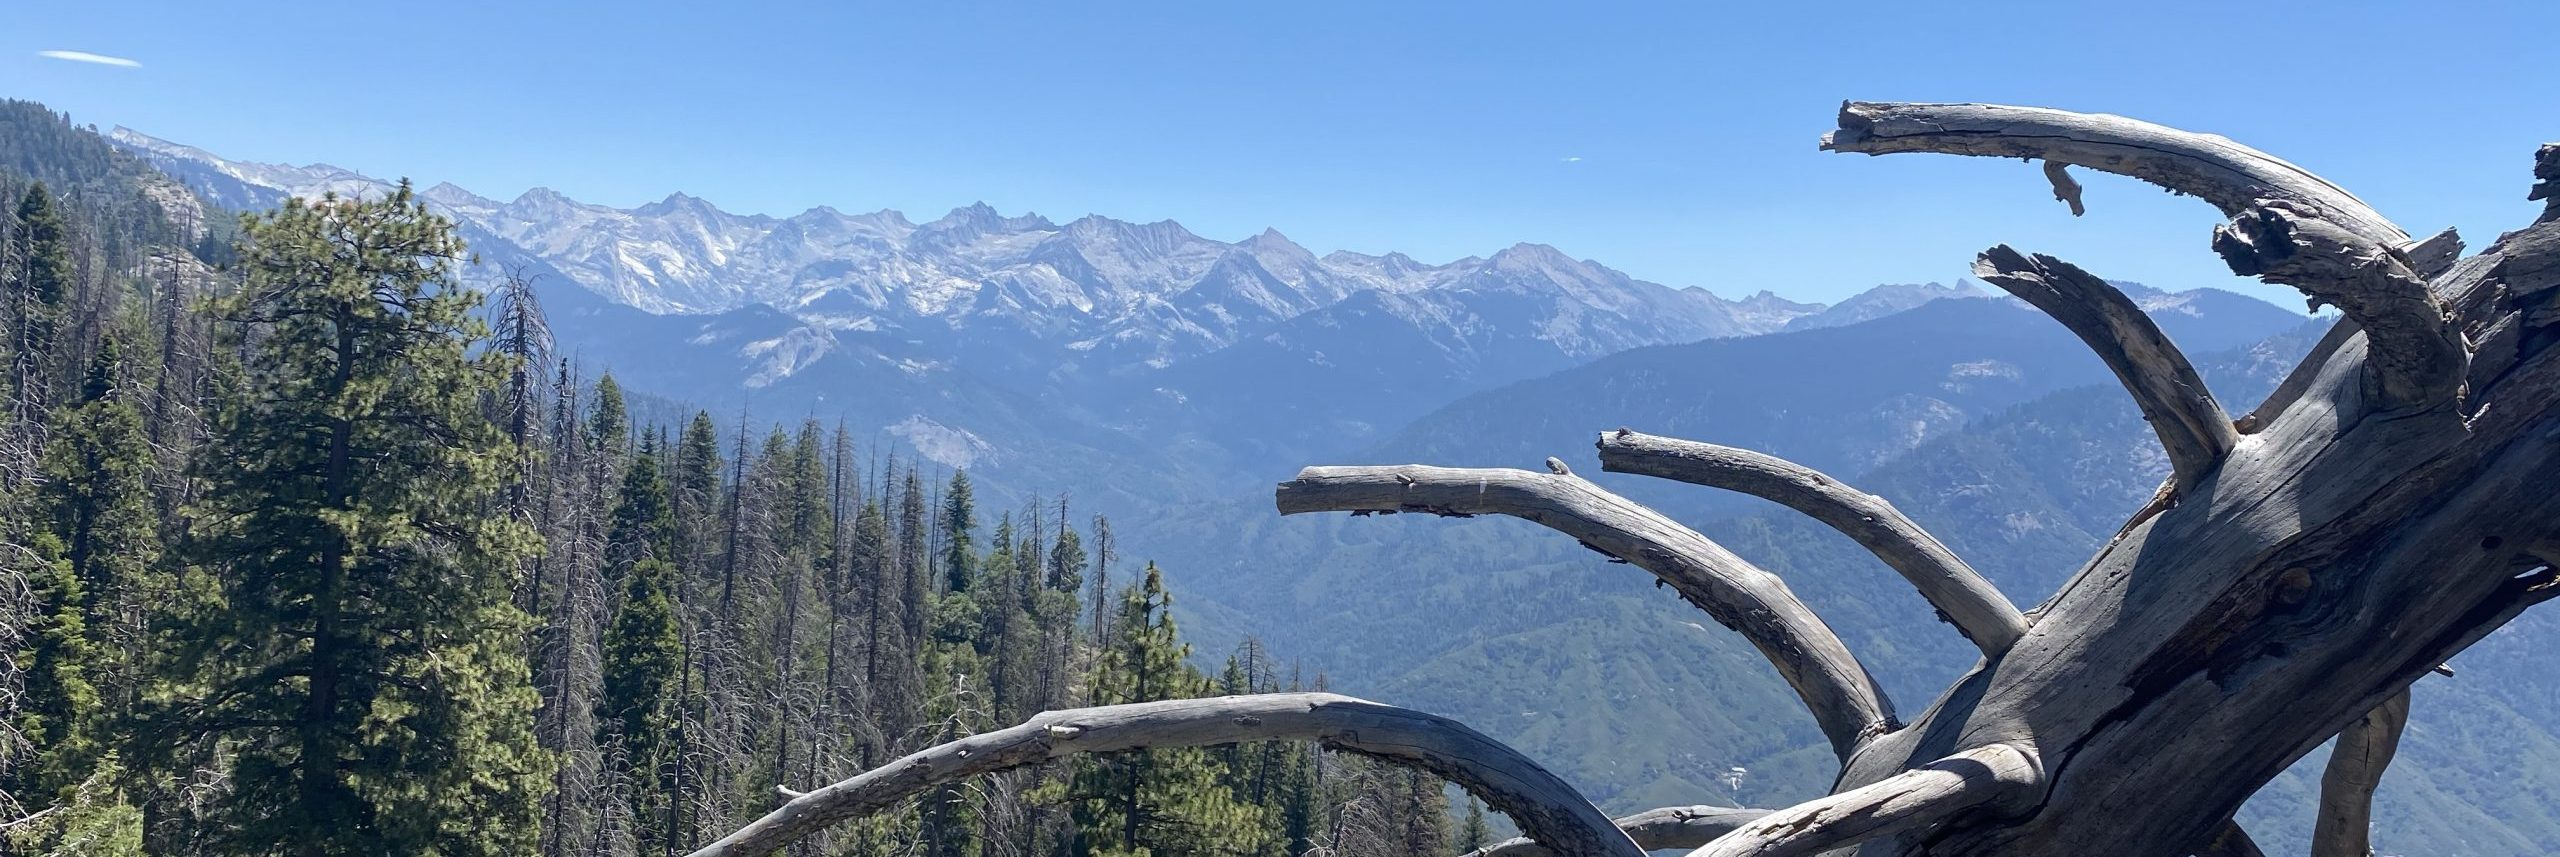 Giant Sequoia National Park - The Traveling Storygirl